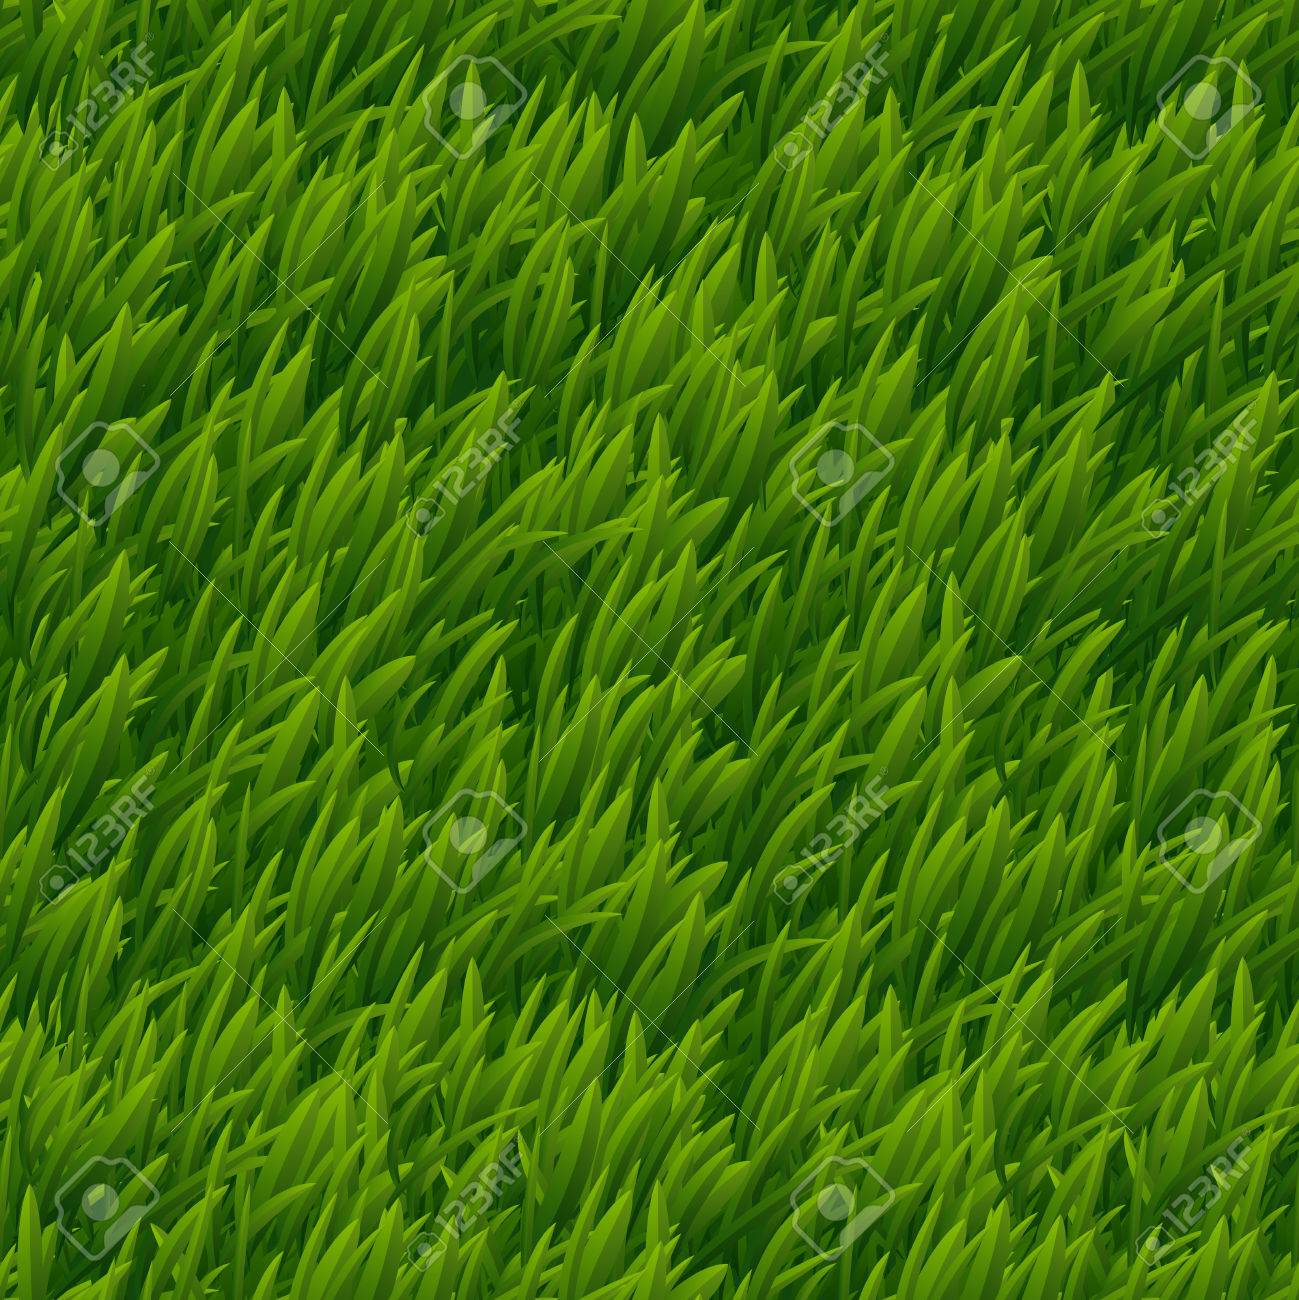 green grass vector seamless texture lawn nature meadow plant royalty free cliparts vectors and stock illustration image 51644443 green grass vector seamless texture lawn nature meadow plant